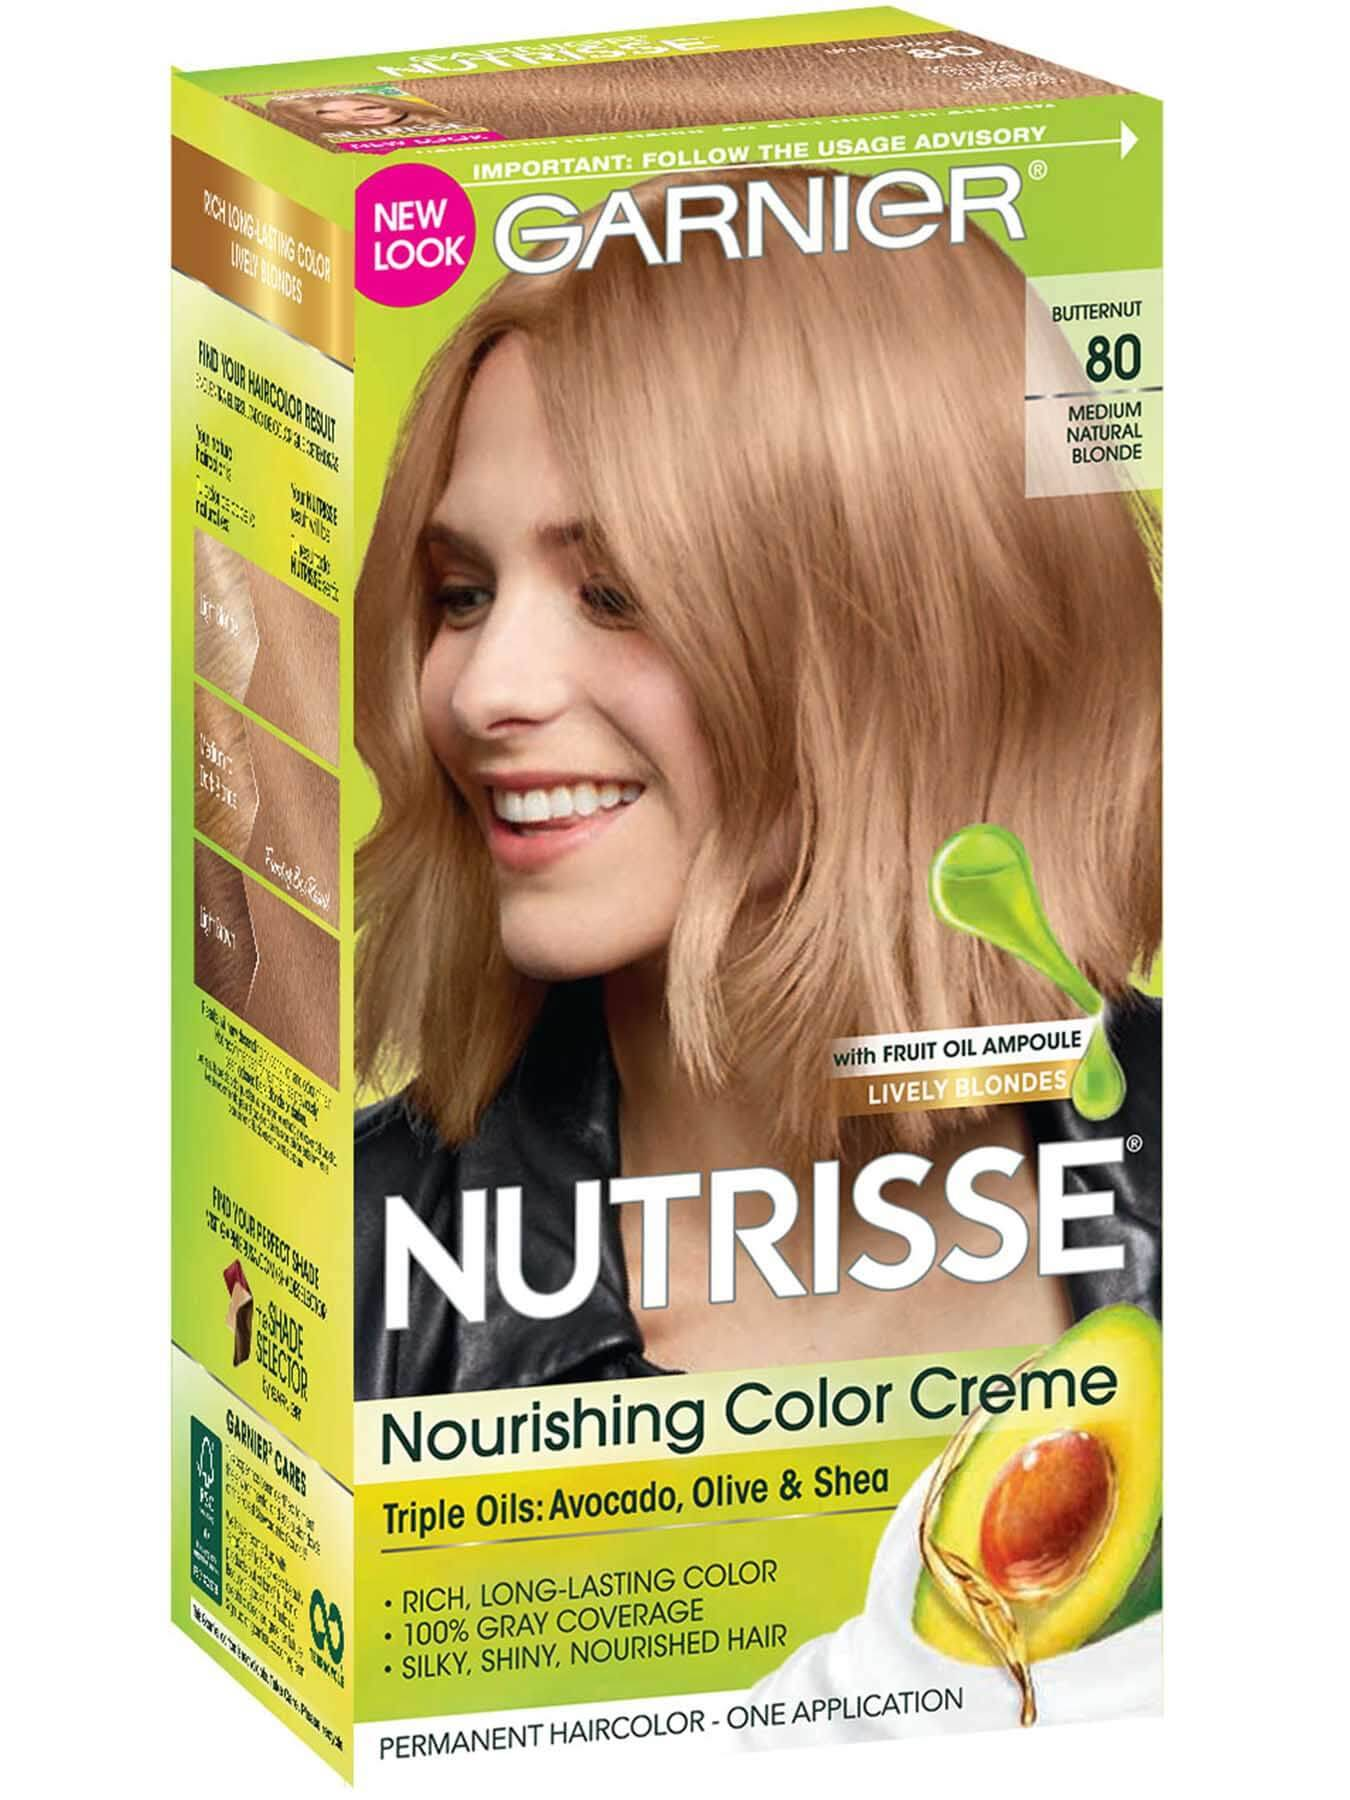 Nourishing Color Creme Medium Natural Blonde 80 (Butternut).